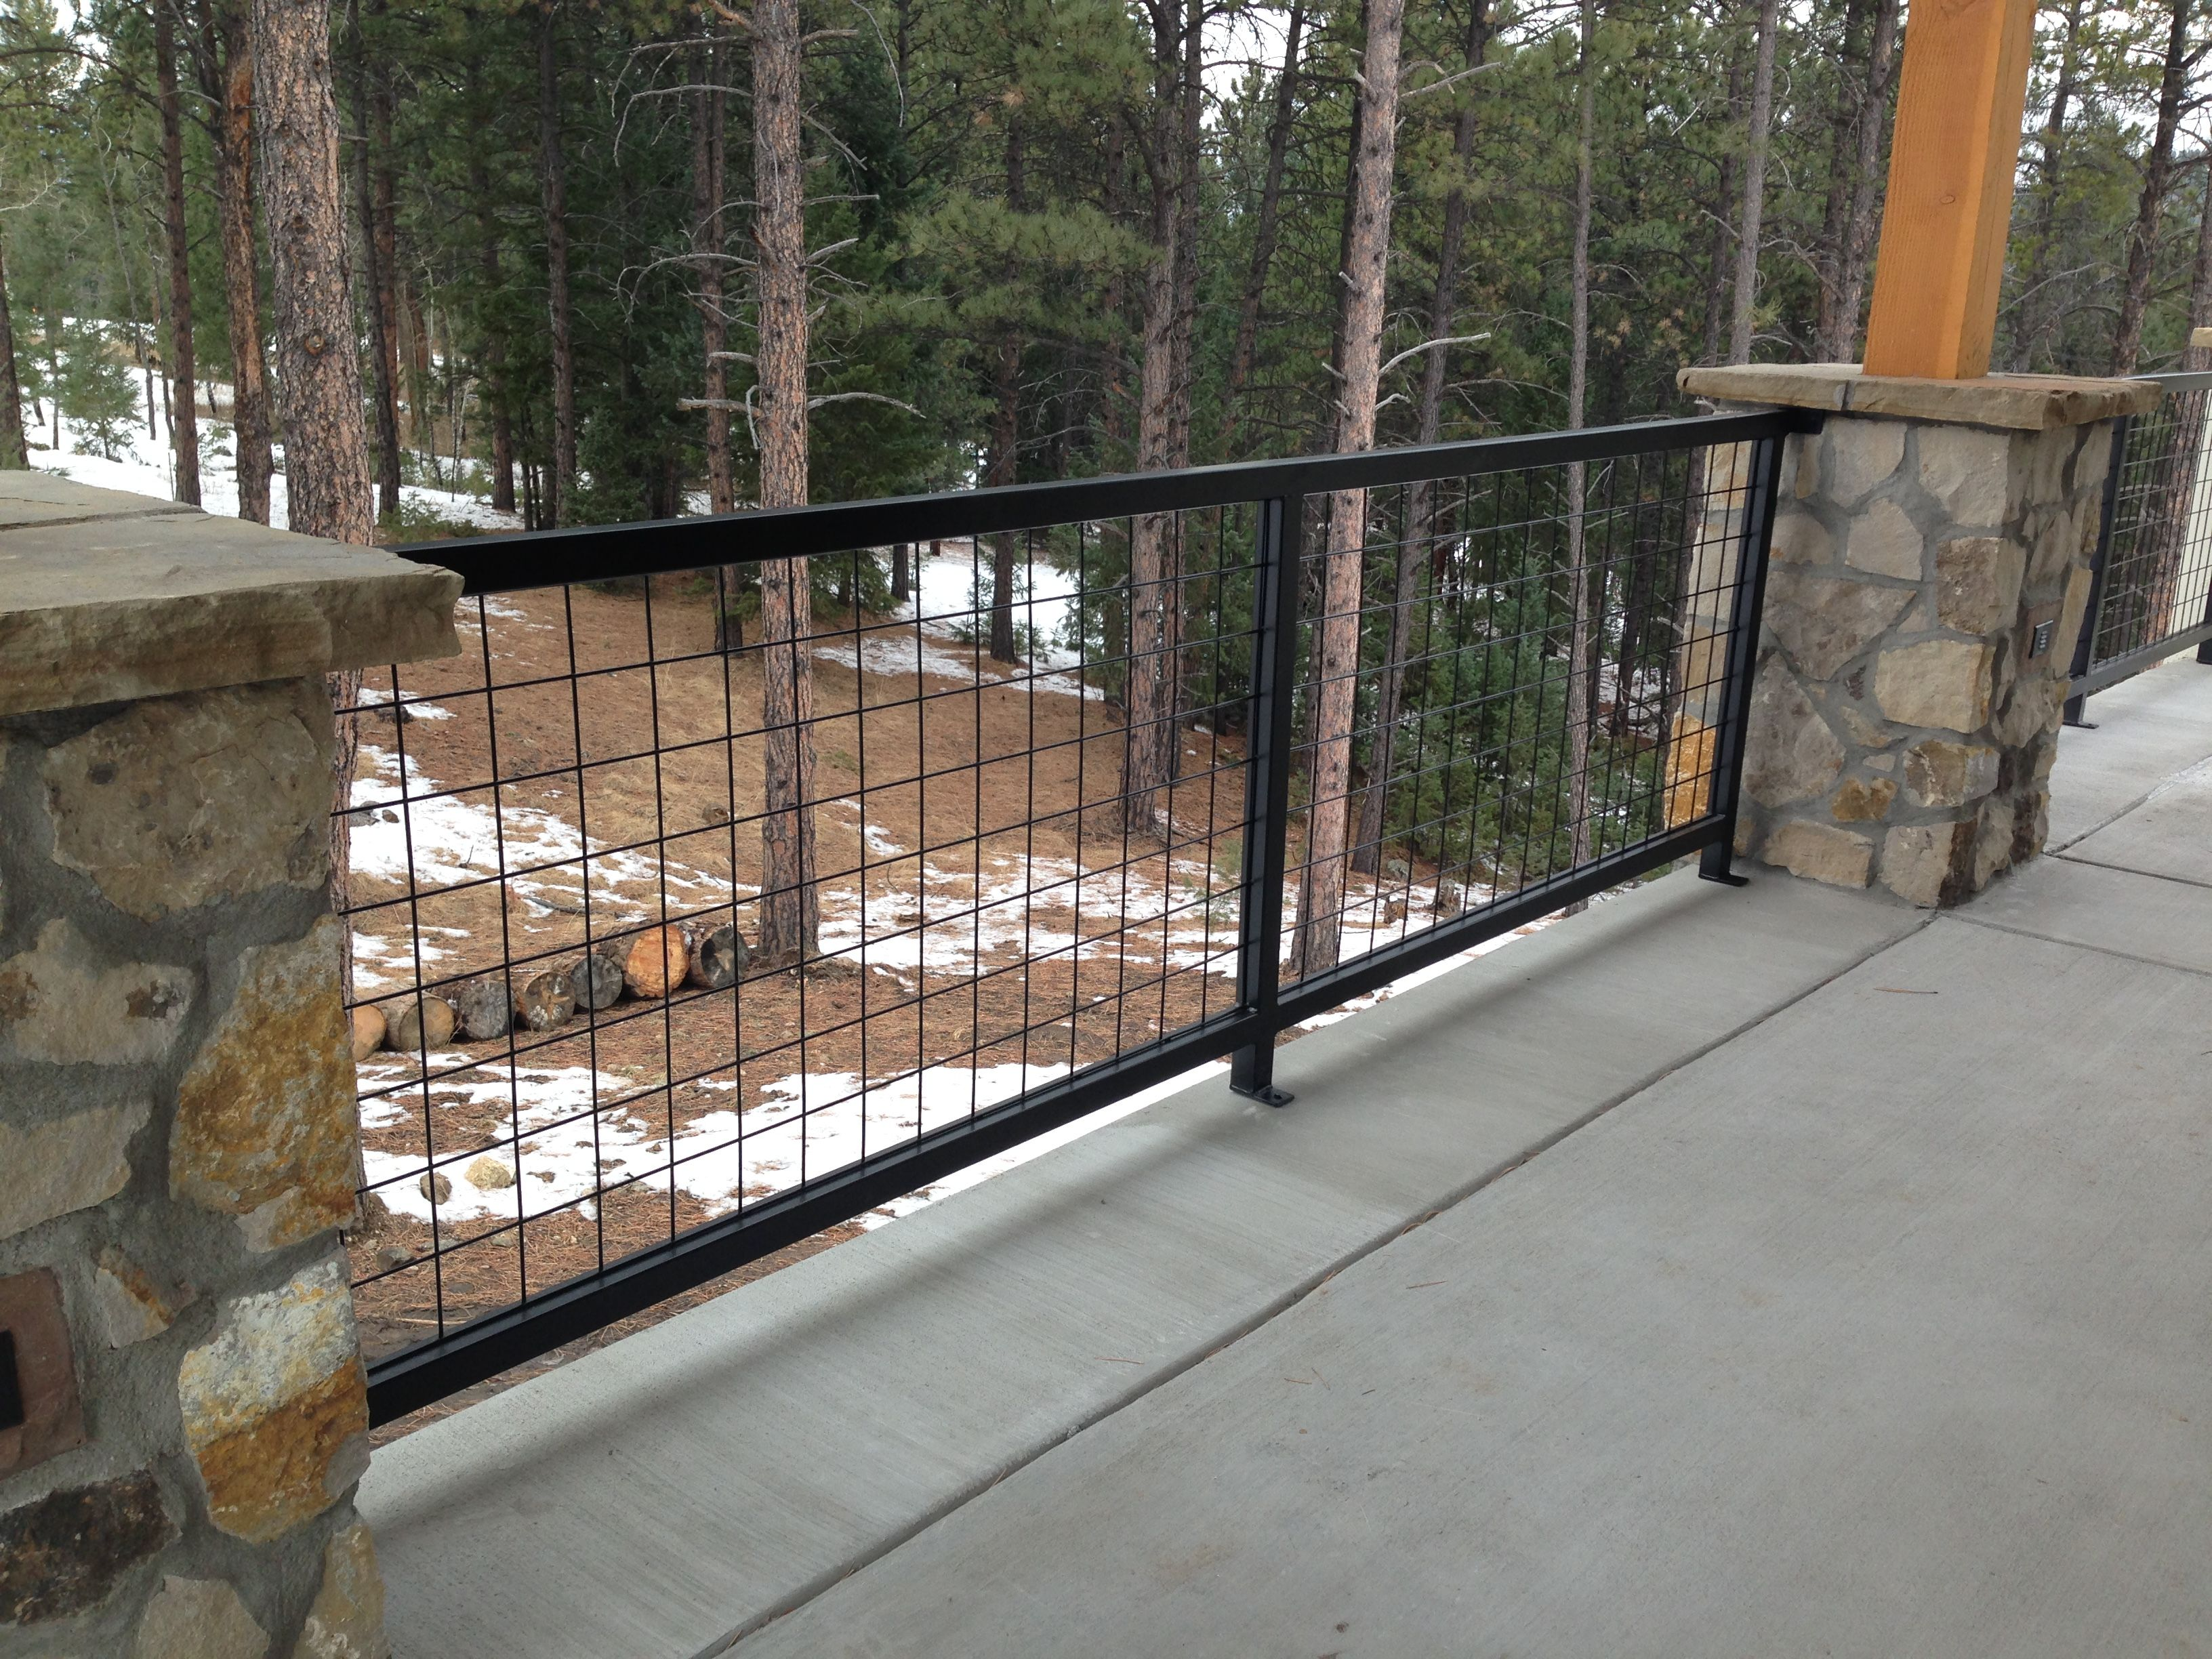 Hog Wire Deck Railing Astonishing On Modern Home Decor Ideas On ...